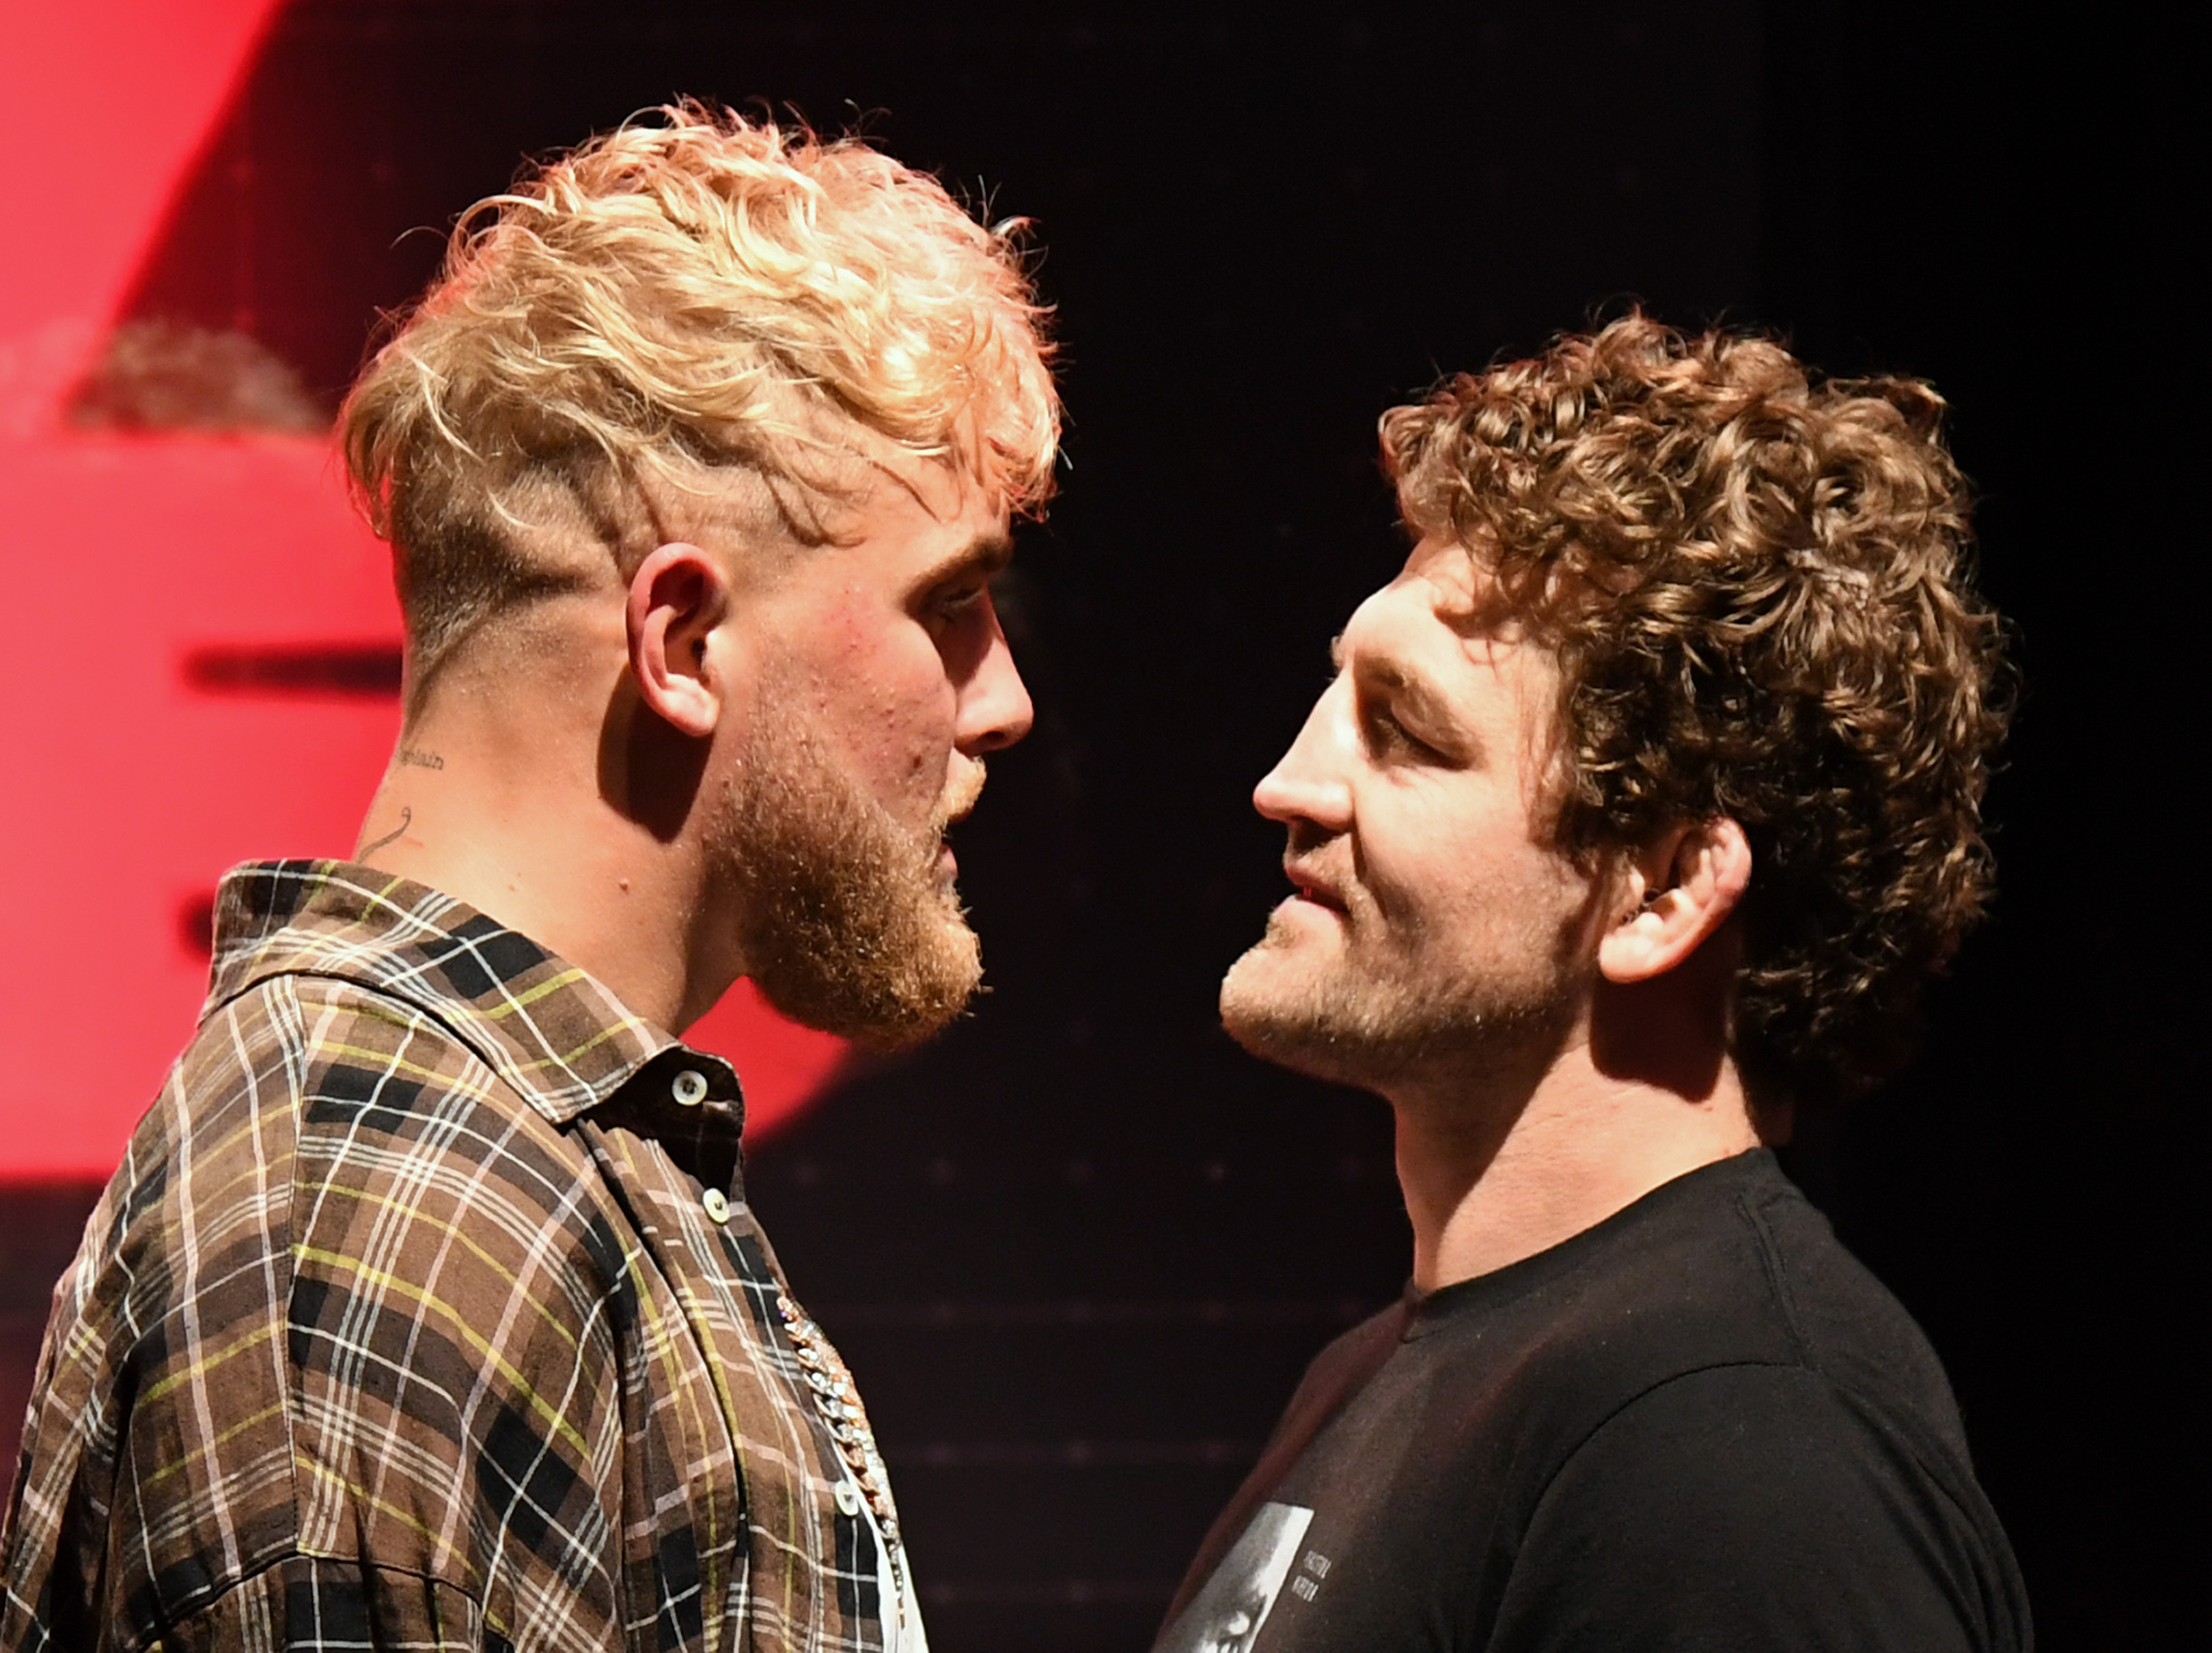 Jake Paul and Ben Askren face off after a press conference for their Triller boxing PPV event.